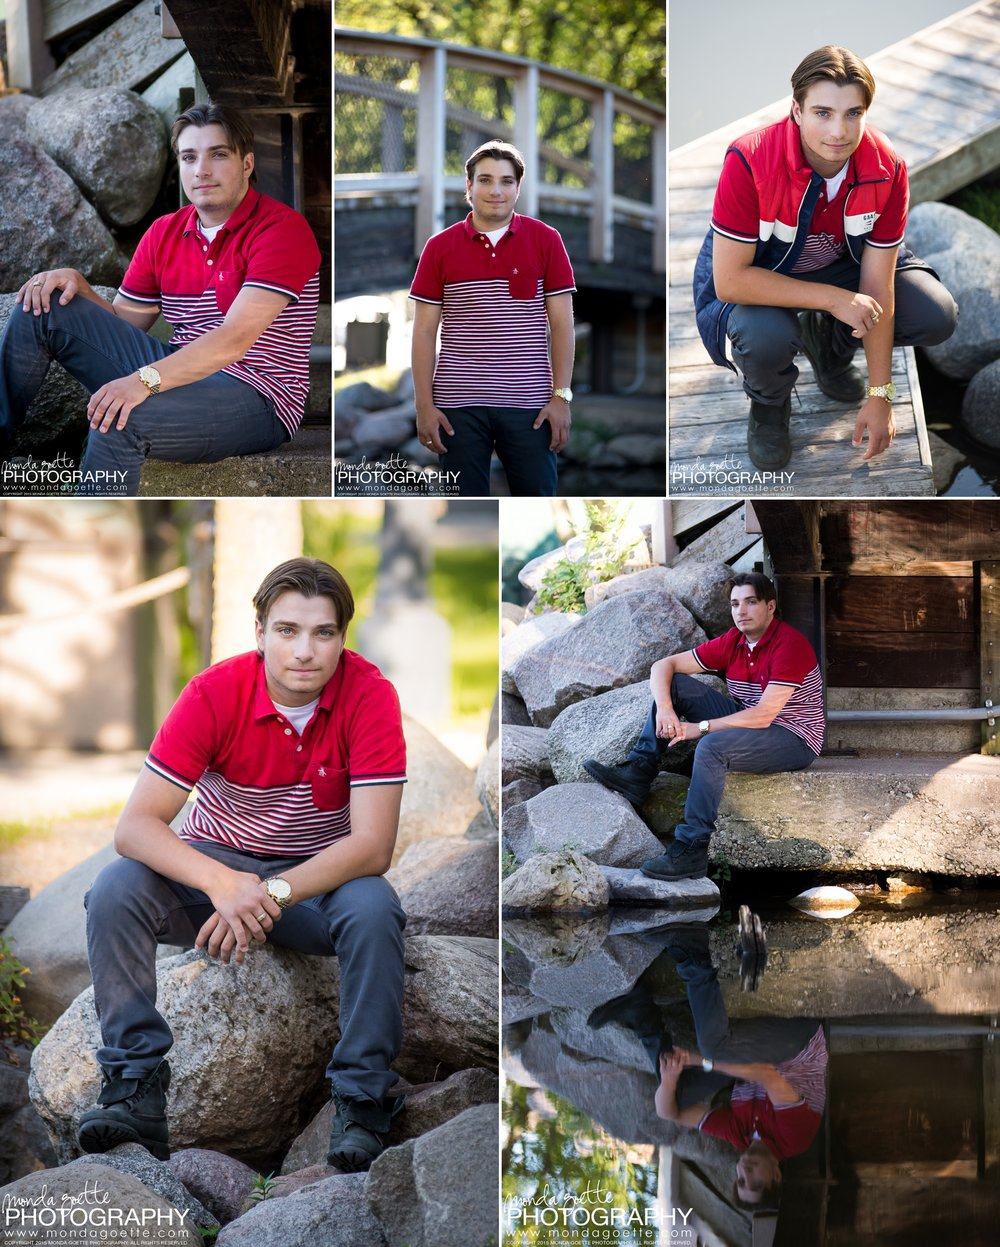 monda-goette-photography-senior-portraits